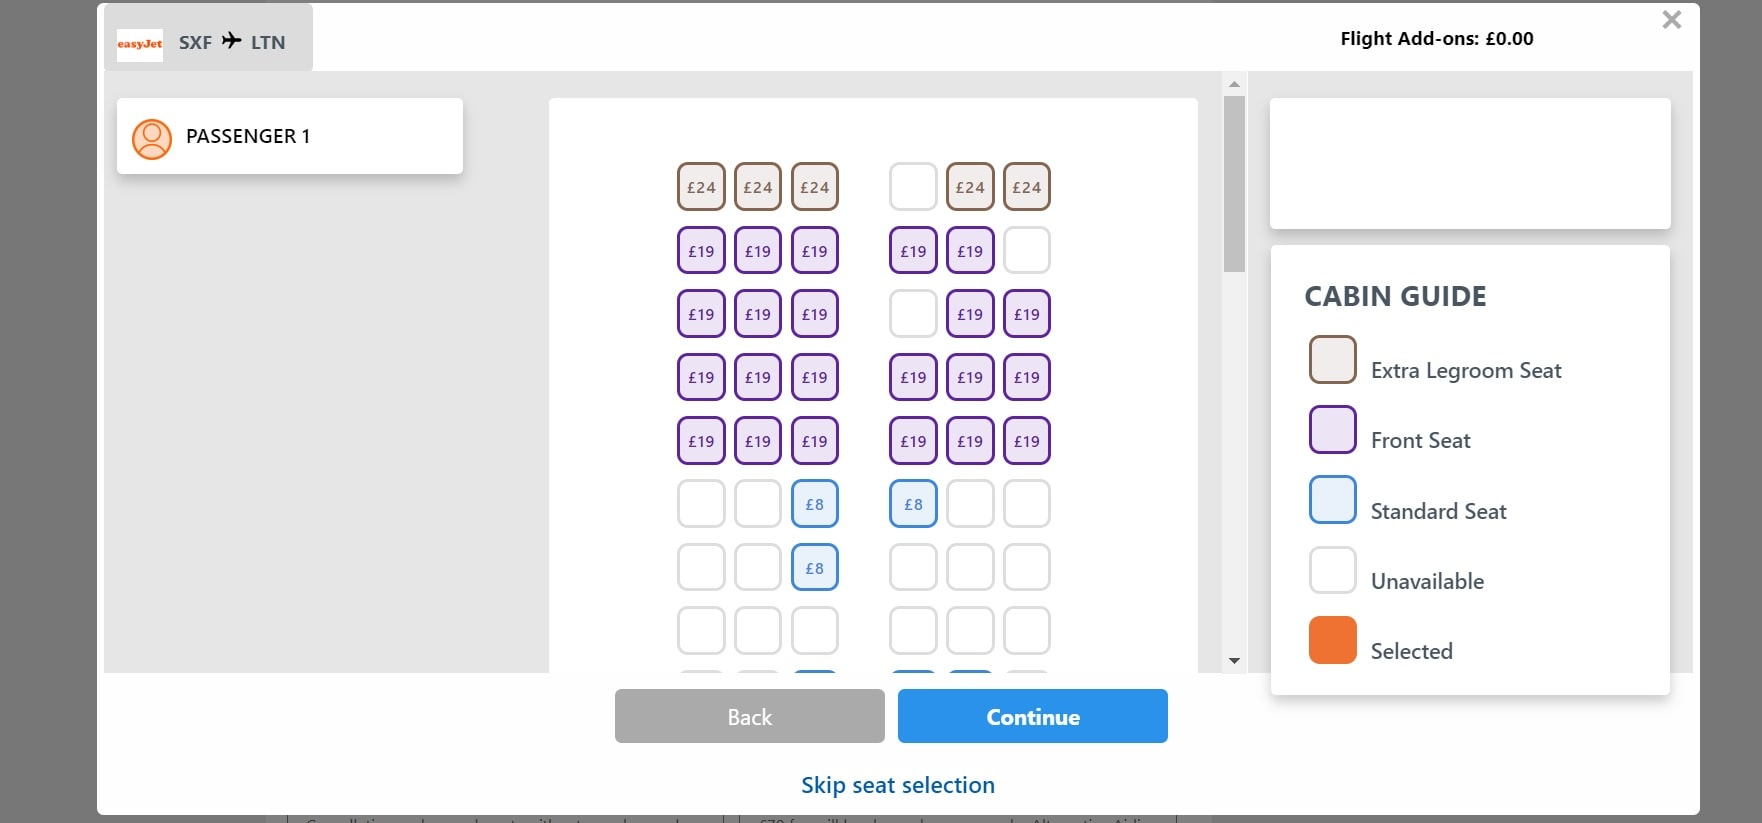 How to Book Airline Seats - Alternative Airlines